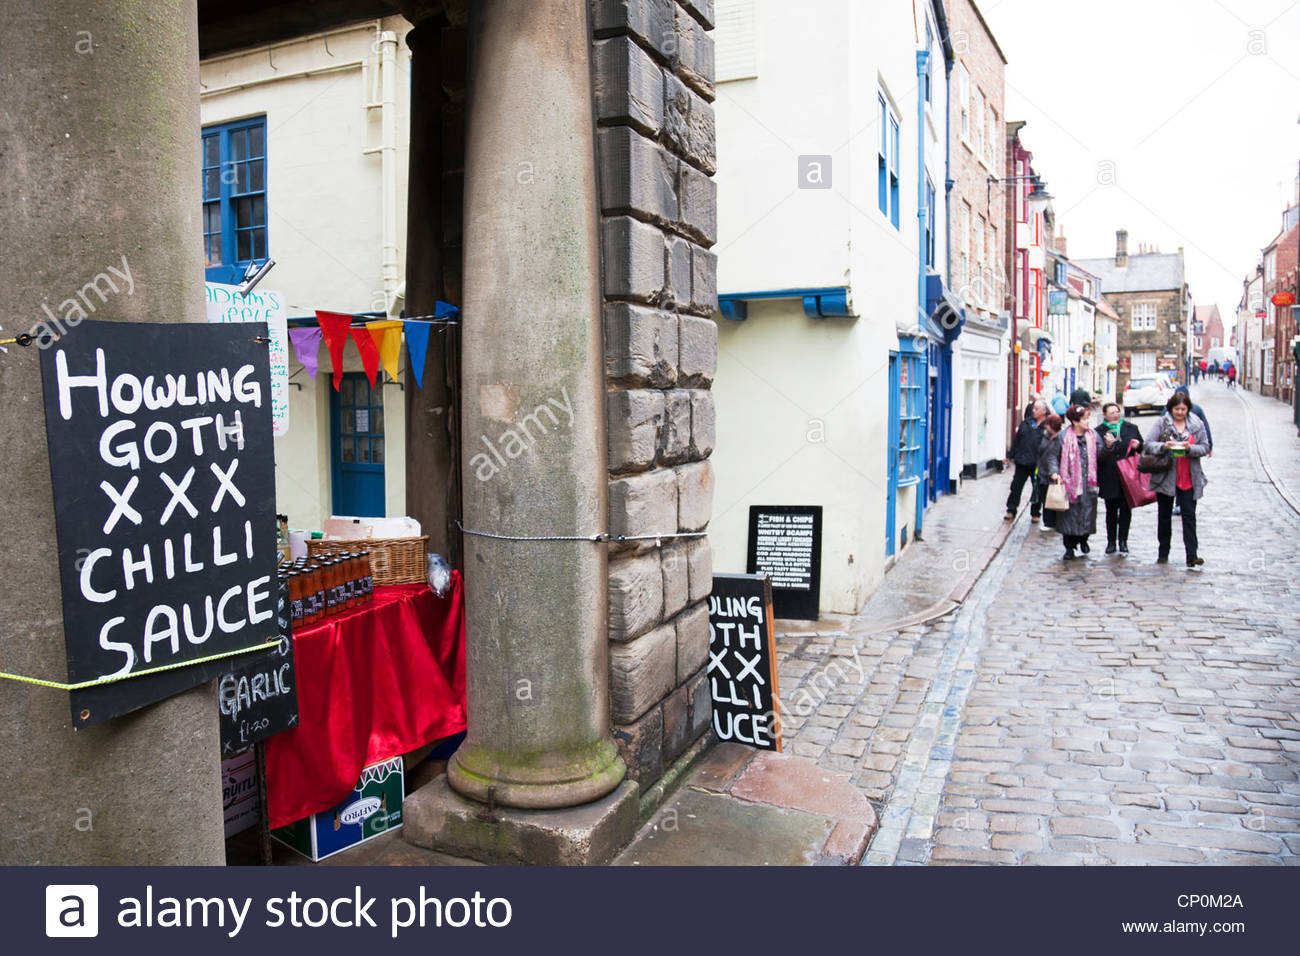 whitby-town-north-yorkshire-uk-england-market-stall-selling-howling-CP0M2A